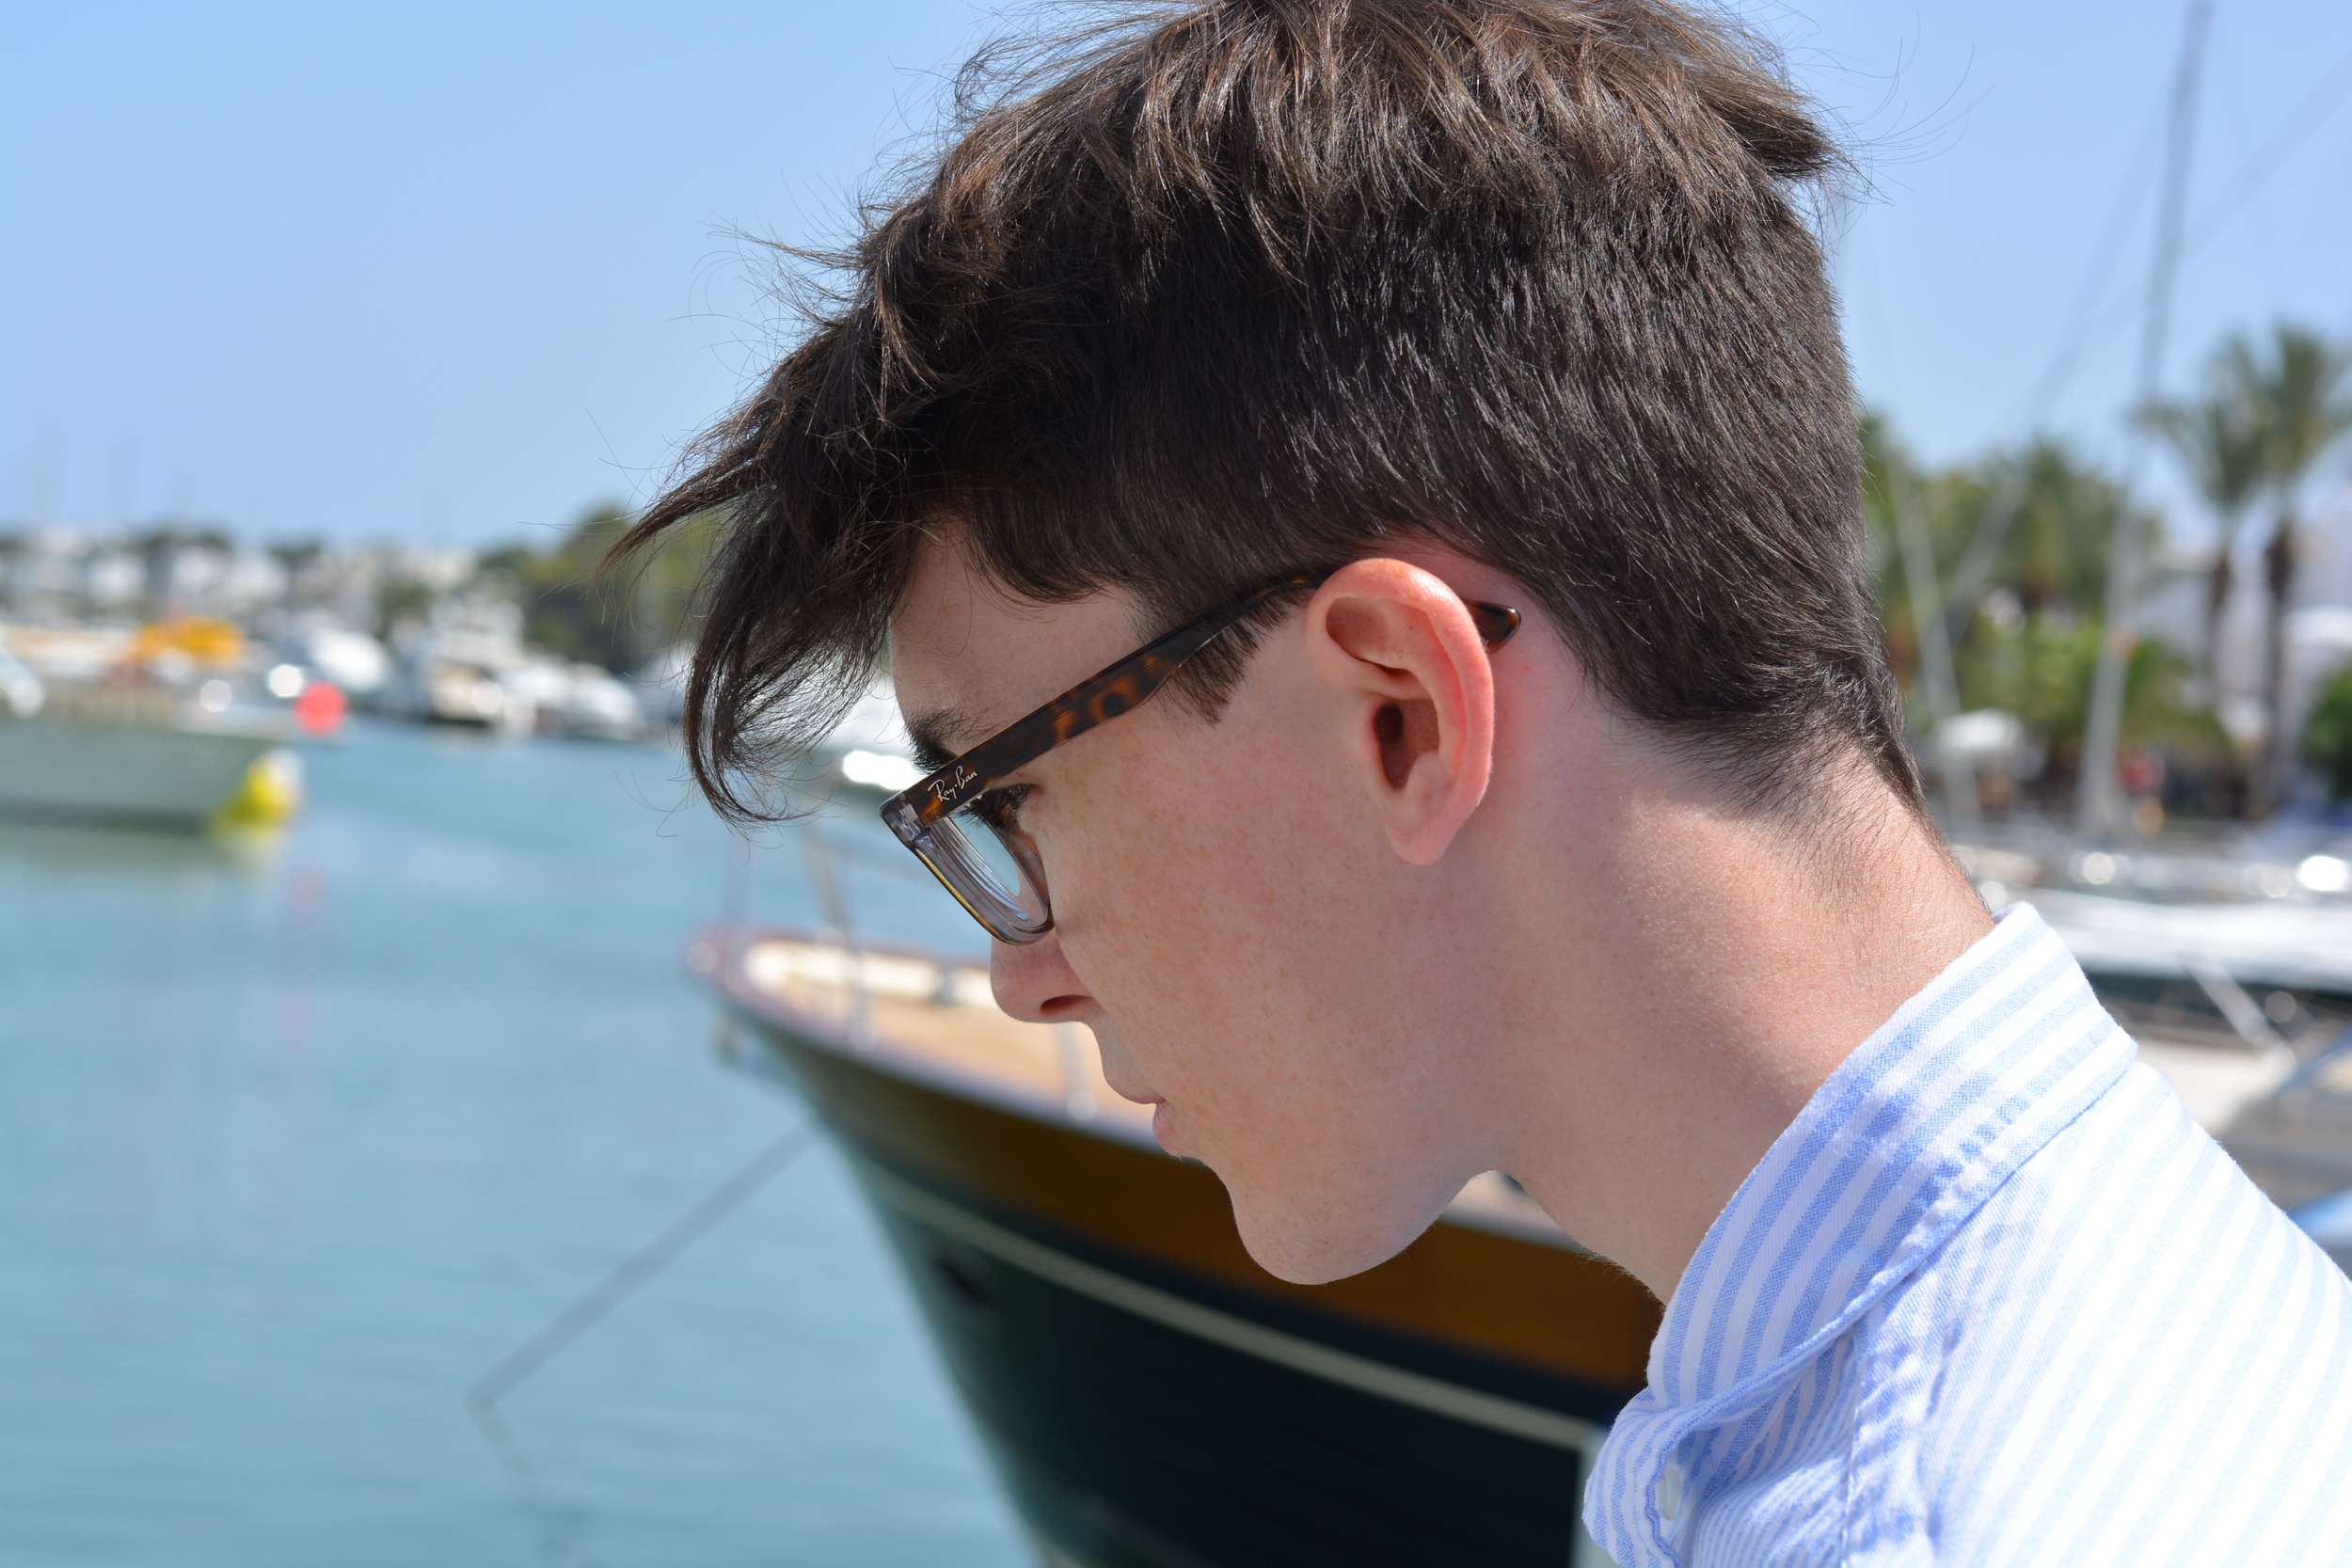 Vision Express Ray Ban RB5286 Glasses | Sam Squire UK Male Fashion & Lifestyle Blogger